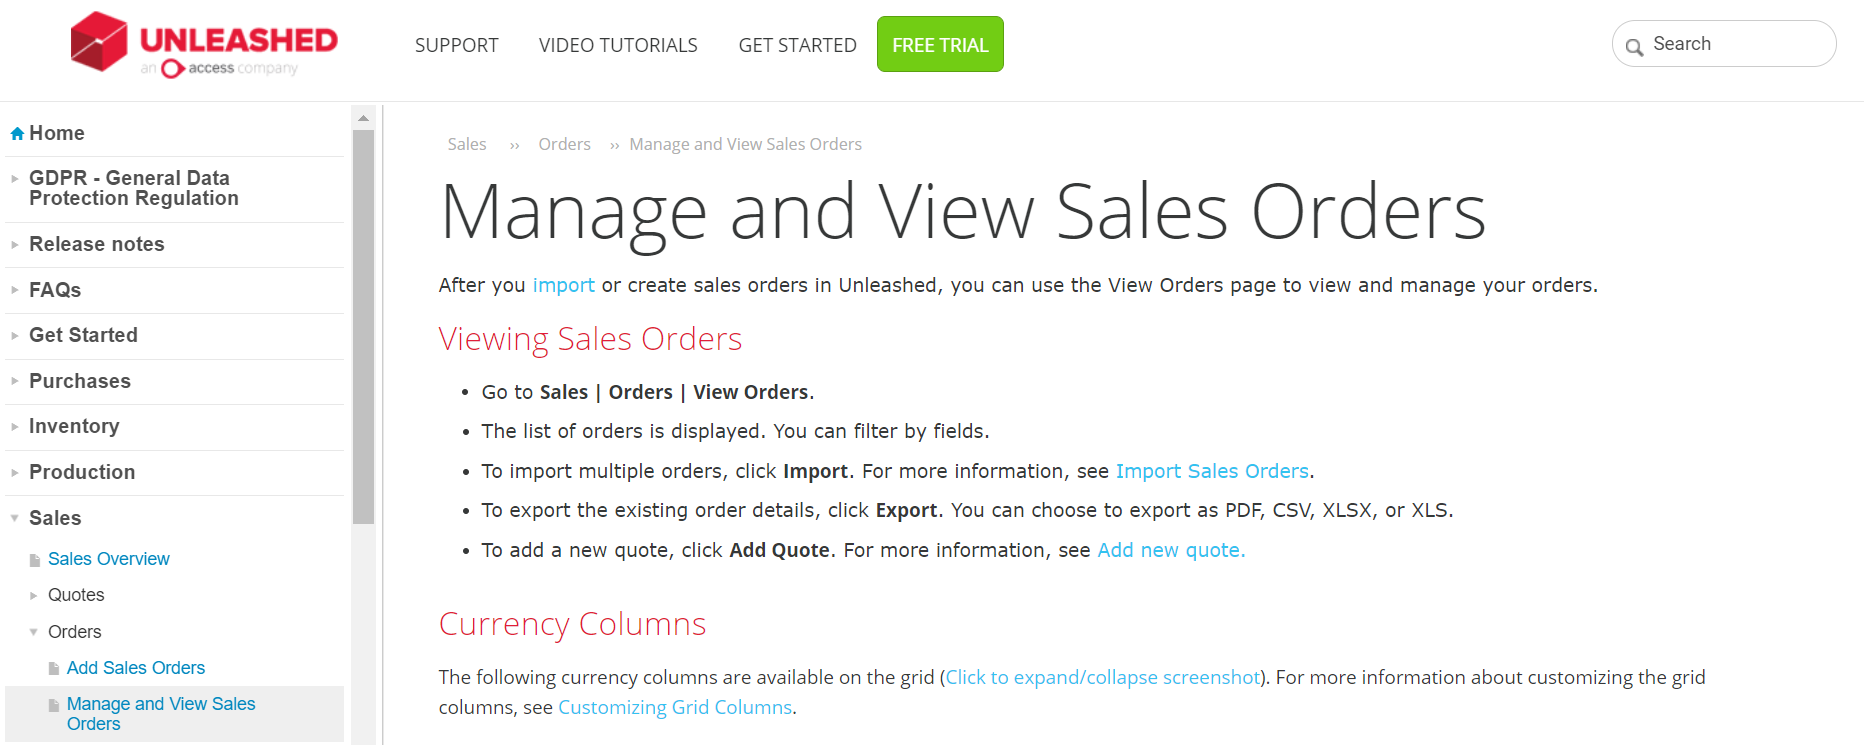 self-service knowledge base examples